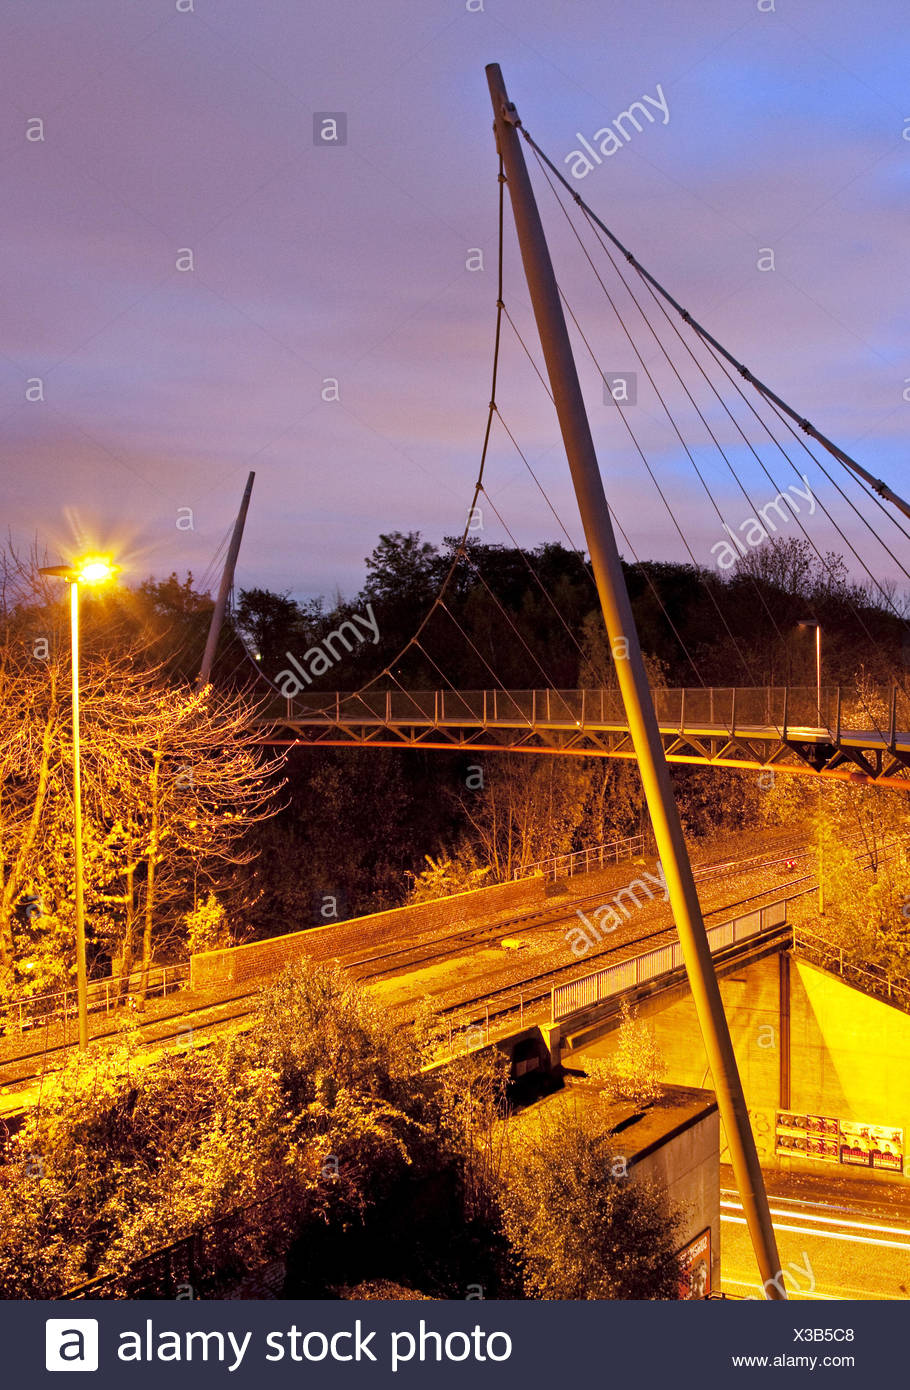 The Erzbahnschwinge in Bochum in Germany. - Stock Image